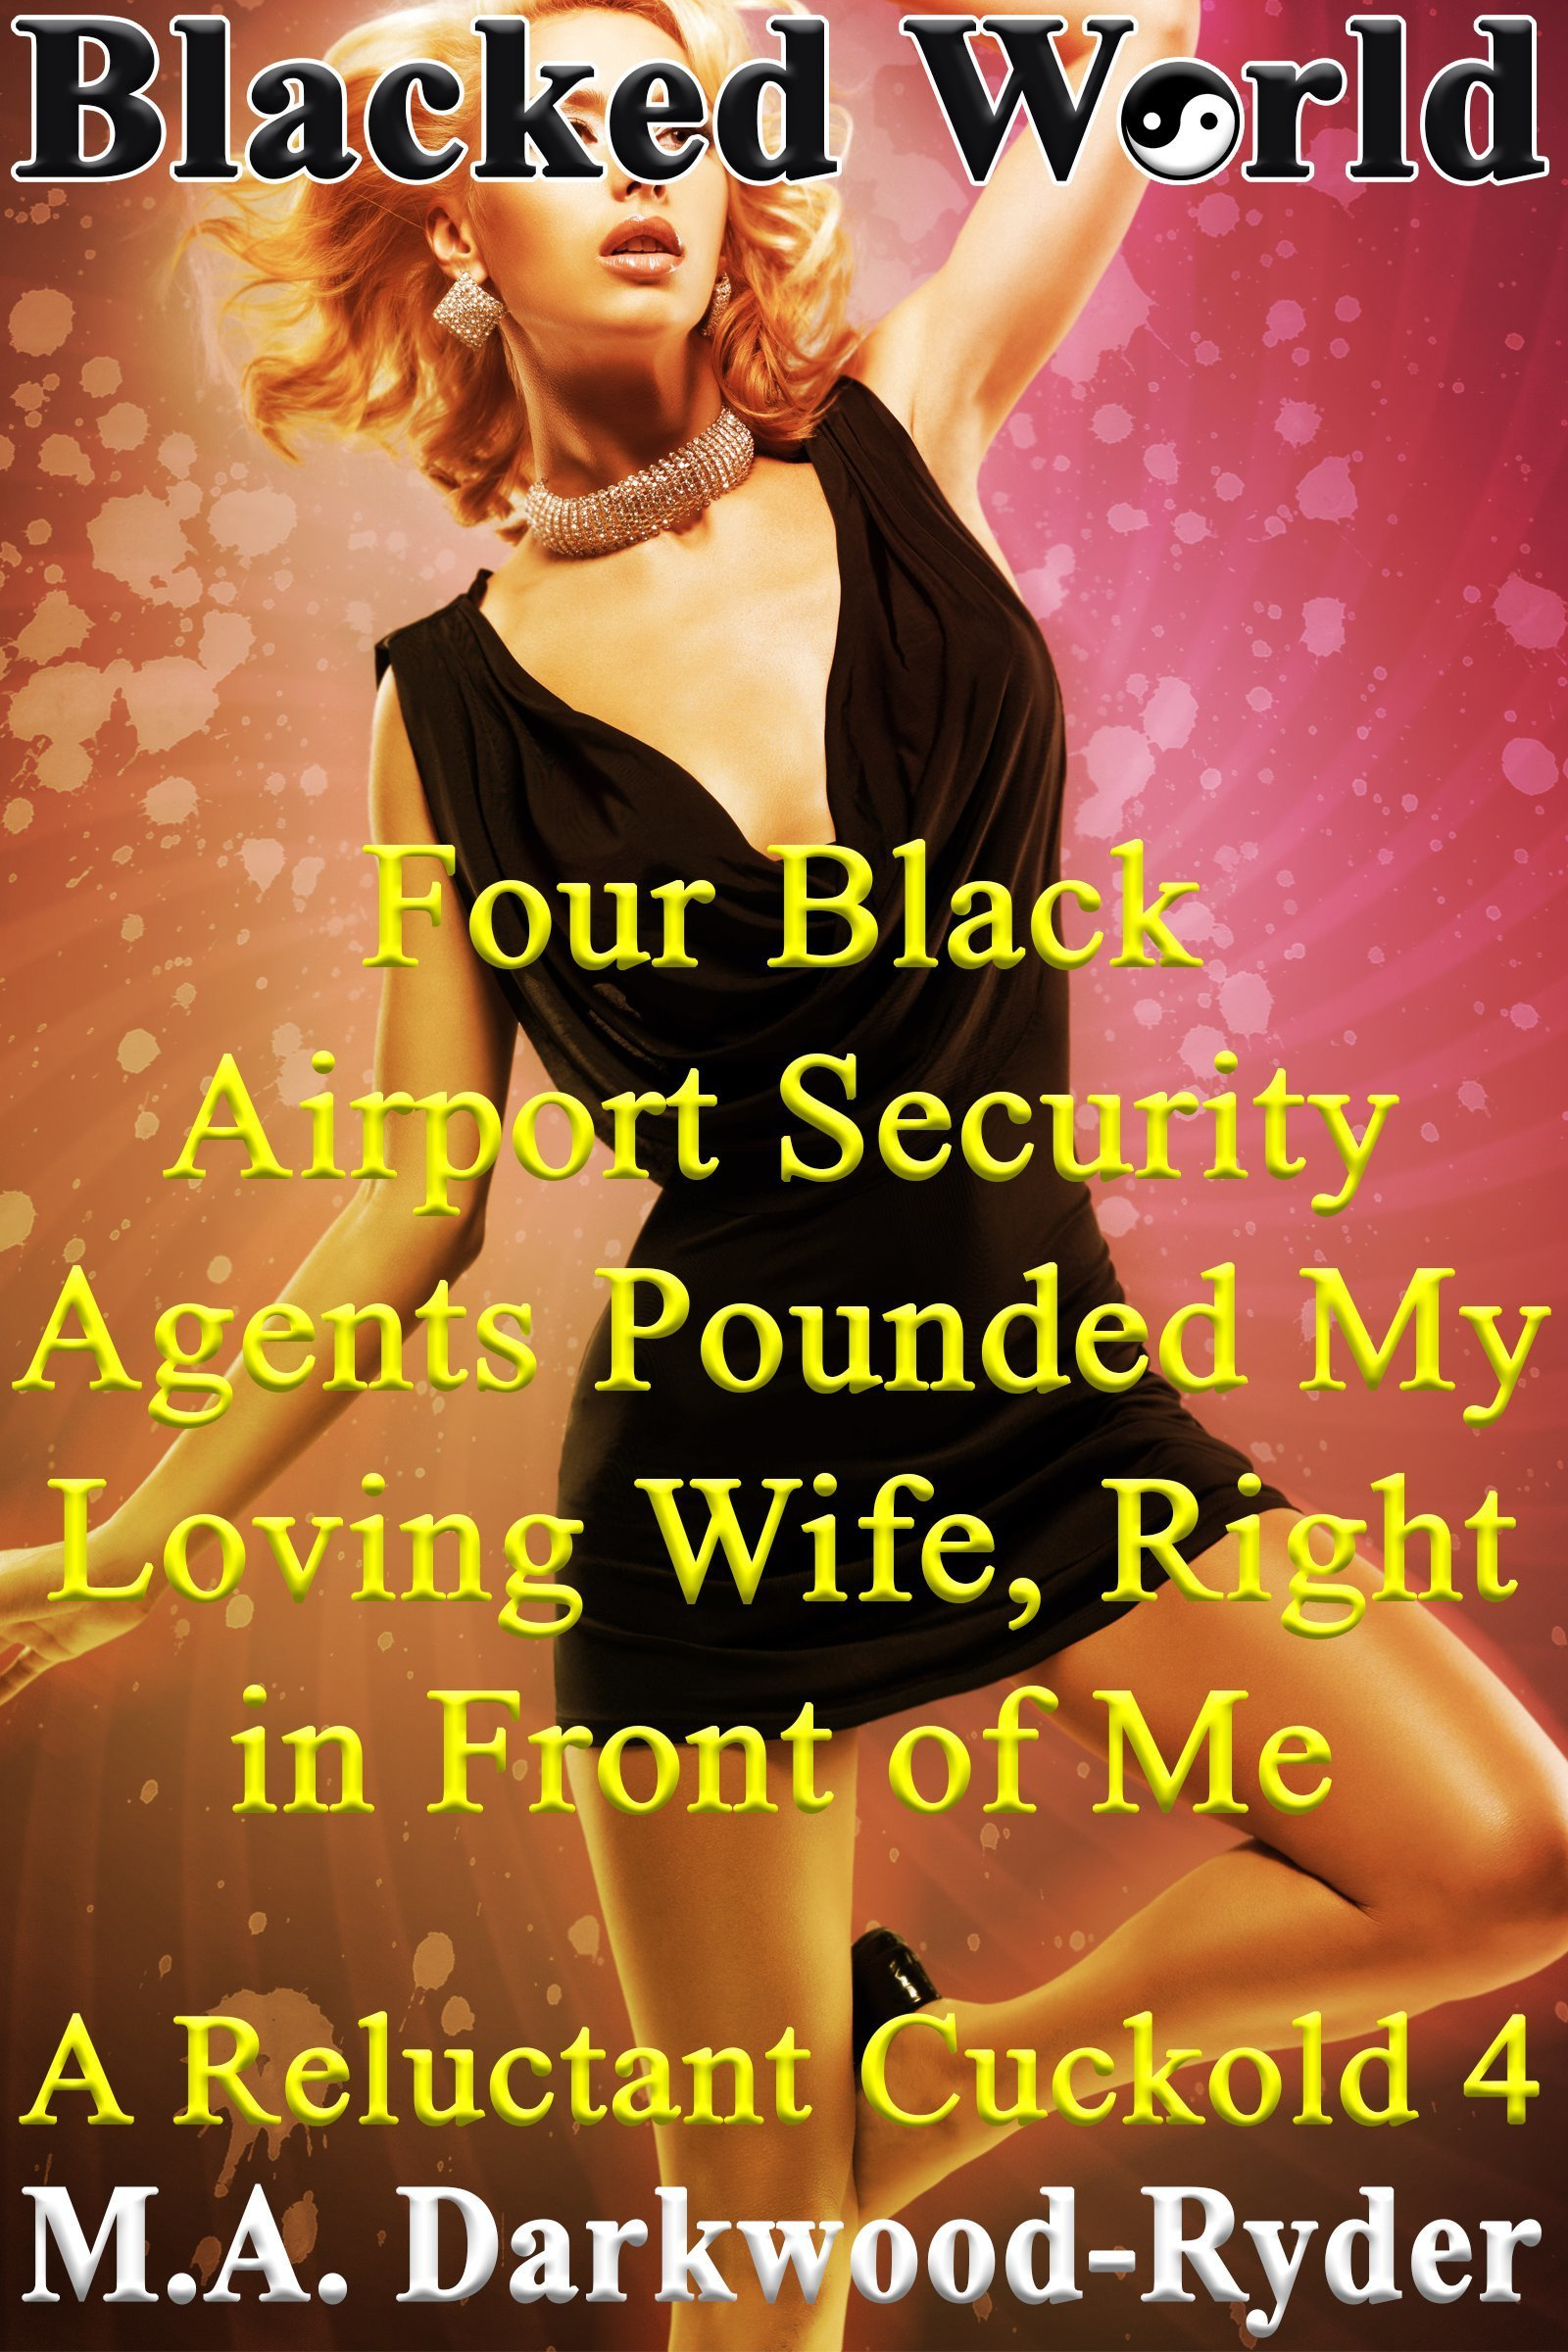 Blacked World: Four Black Airport Security Agents Pounded My Loving Wife, Right in Front of Me!: A Reluctant Cuckold 4